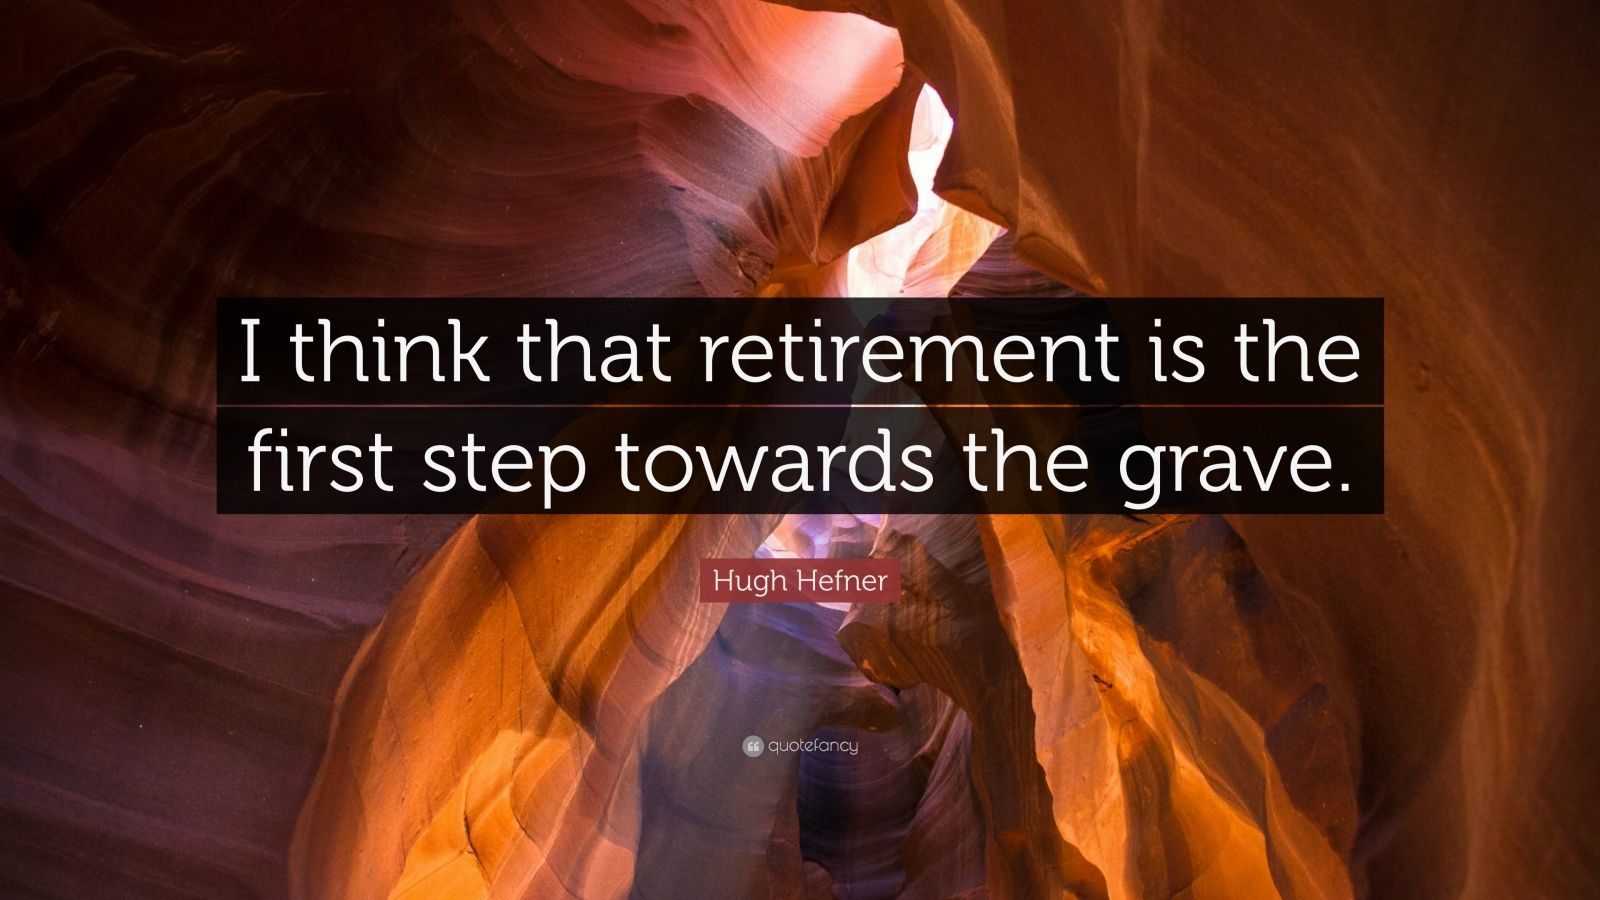 """Hugh Hefner Quote: """"I think that retirement is the first step towards the grave."""""""